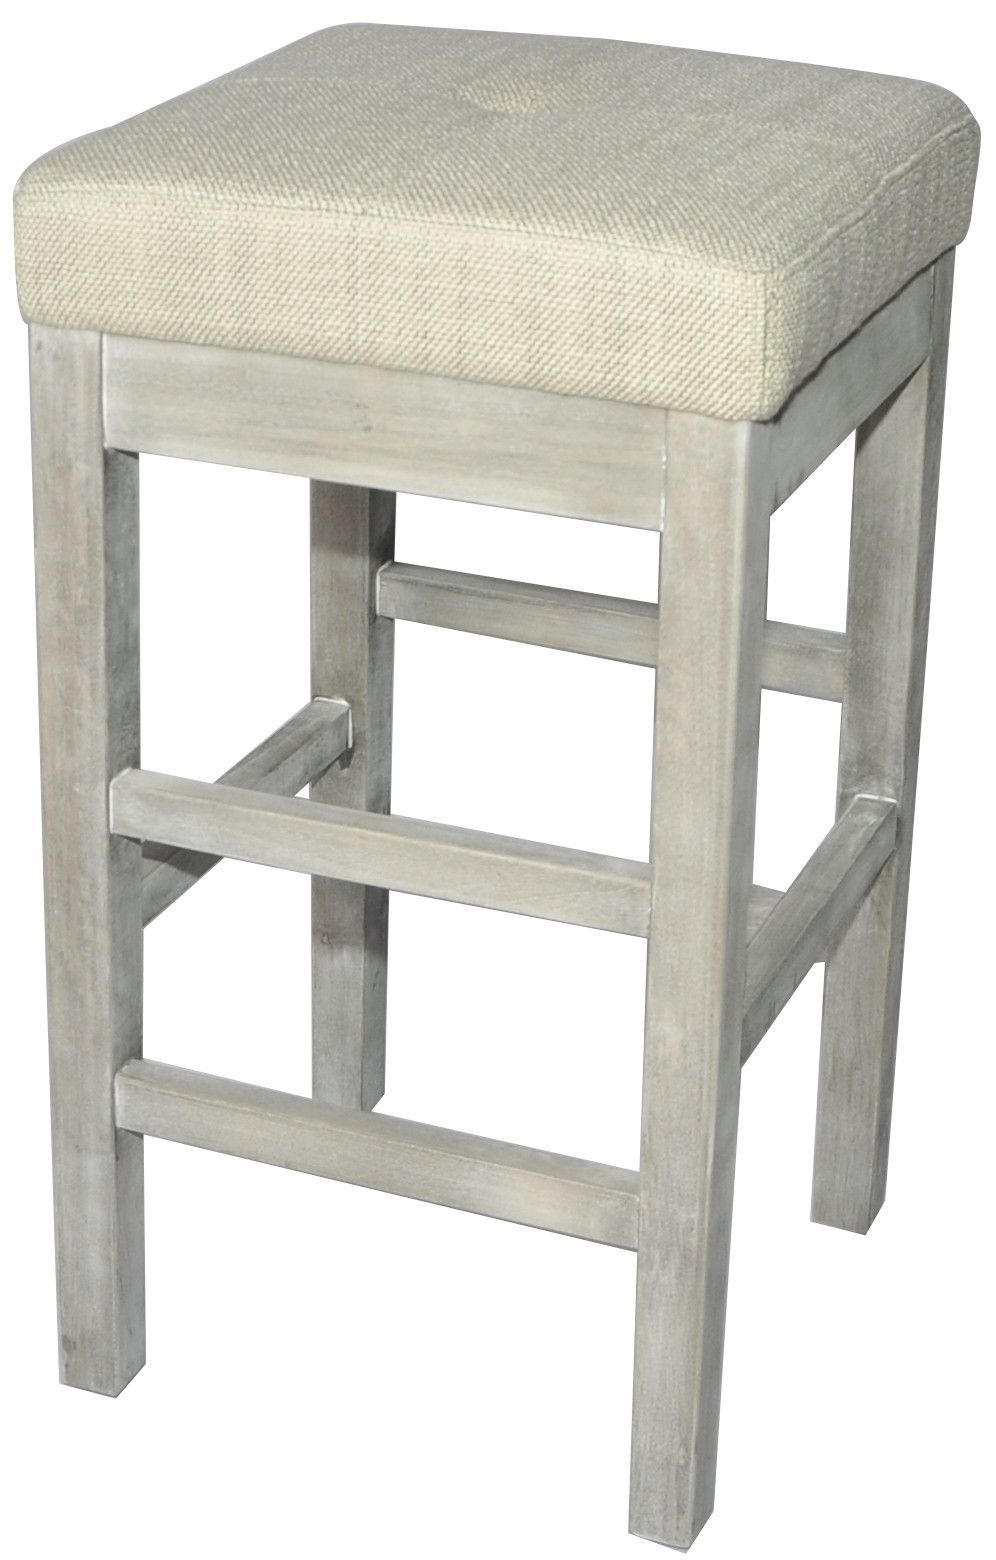 Valencia Backless Counter Stool Mystique Gray Legs, Canvas Within Most Up To Date Valencia 4 Piece Counter Sets With Bench & Counterstool (Photo 19 of 20)